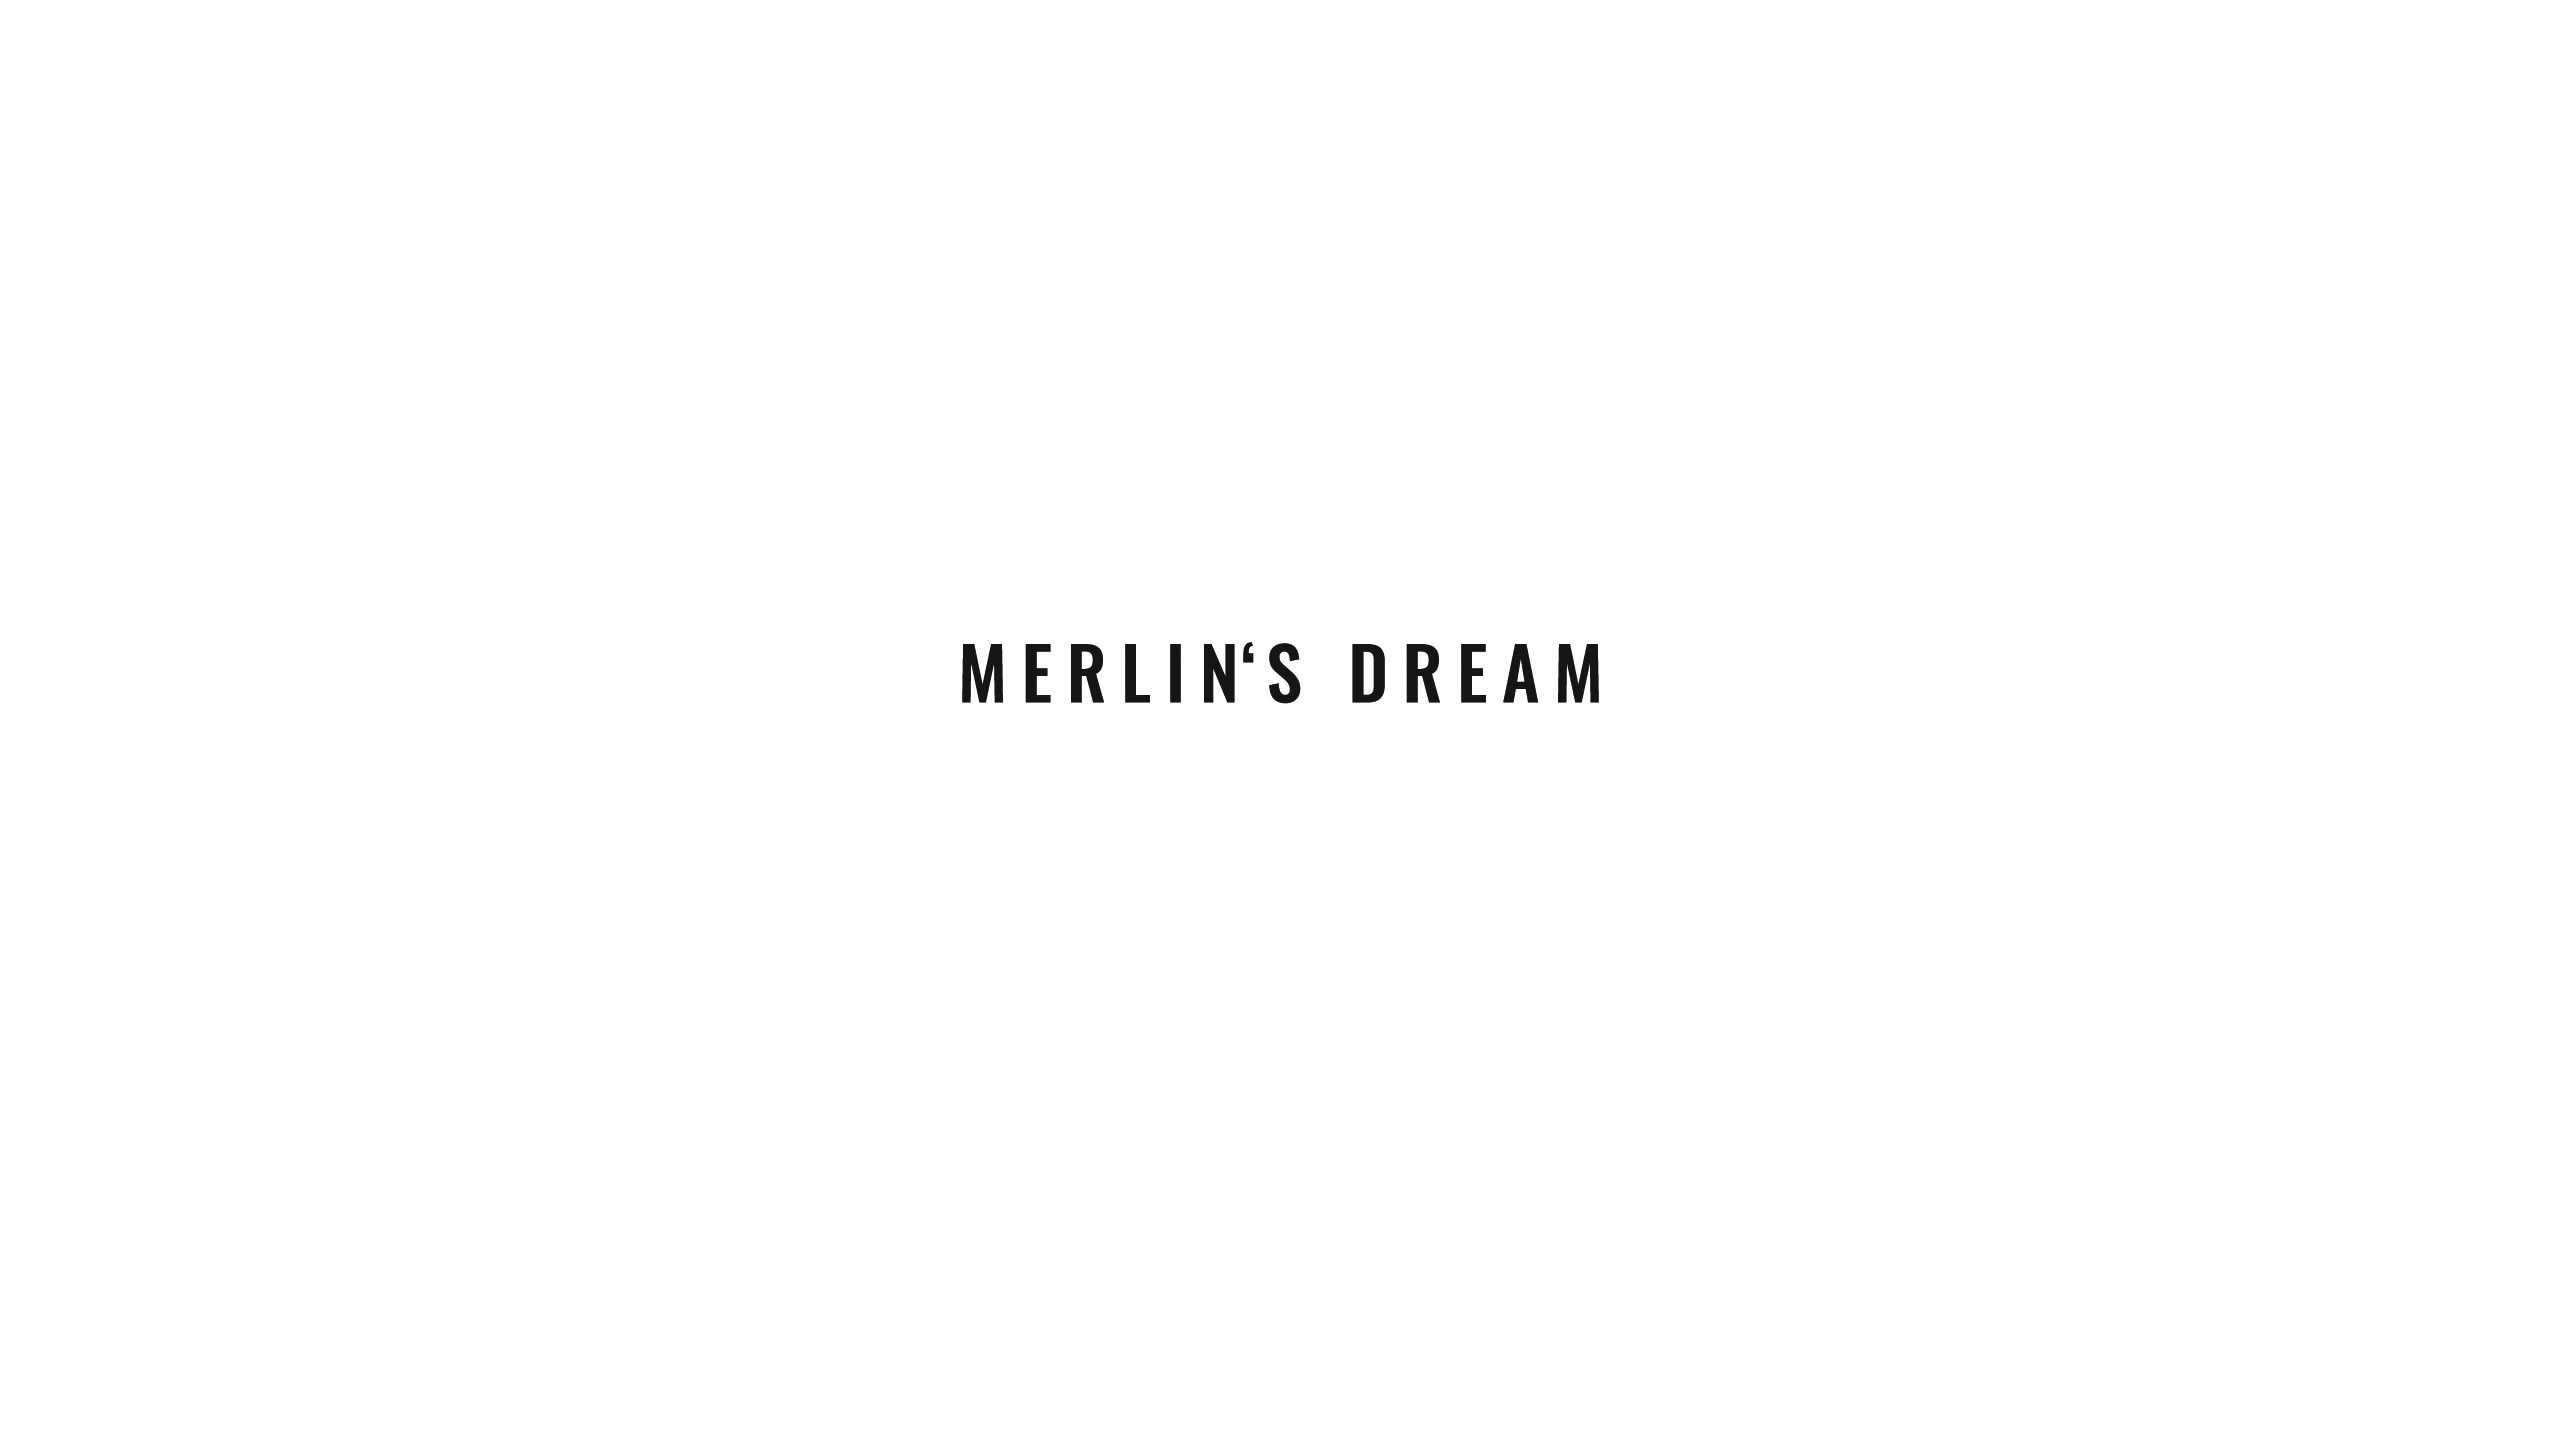 1a_Text_merlins_dream